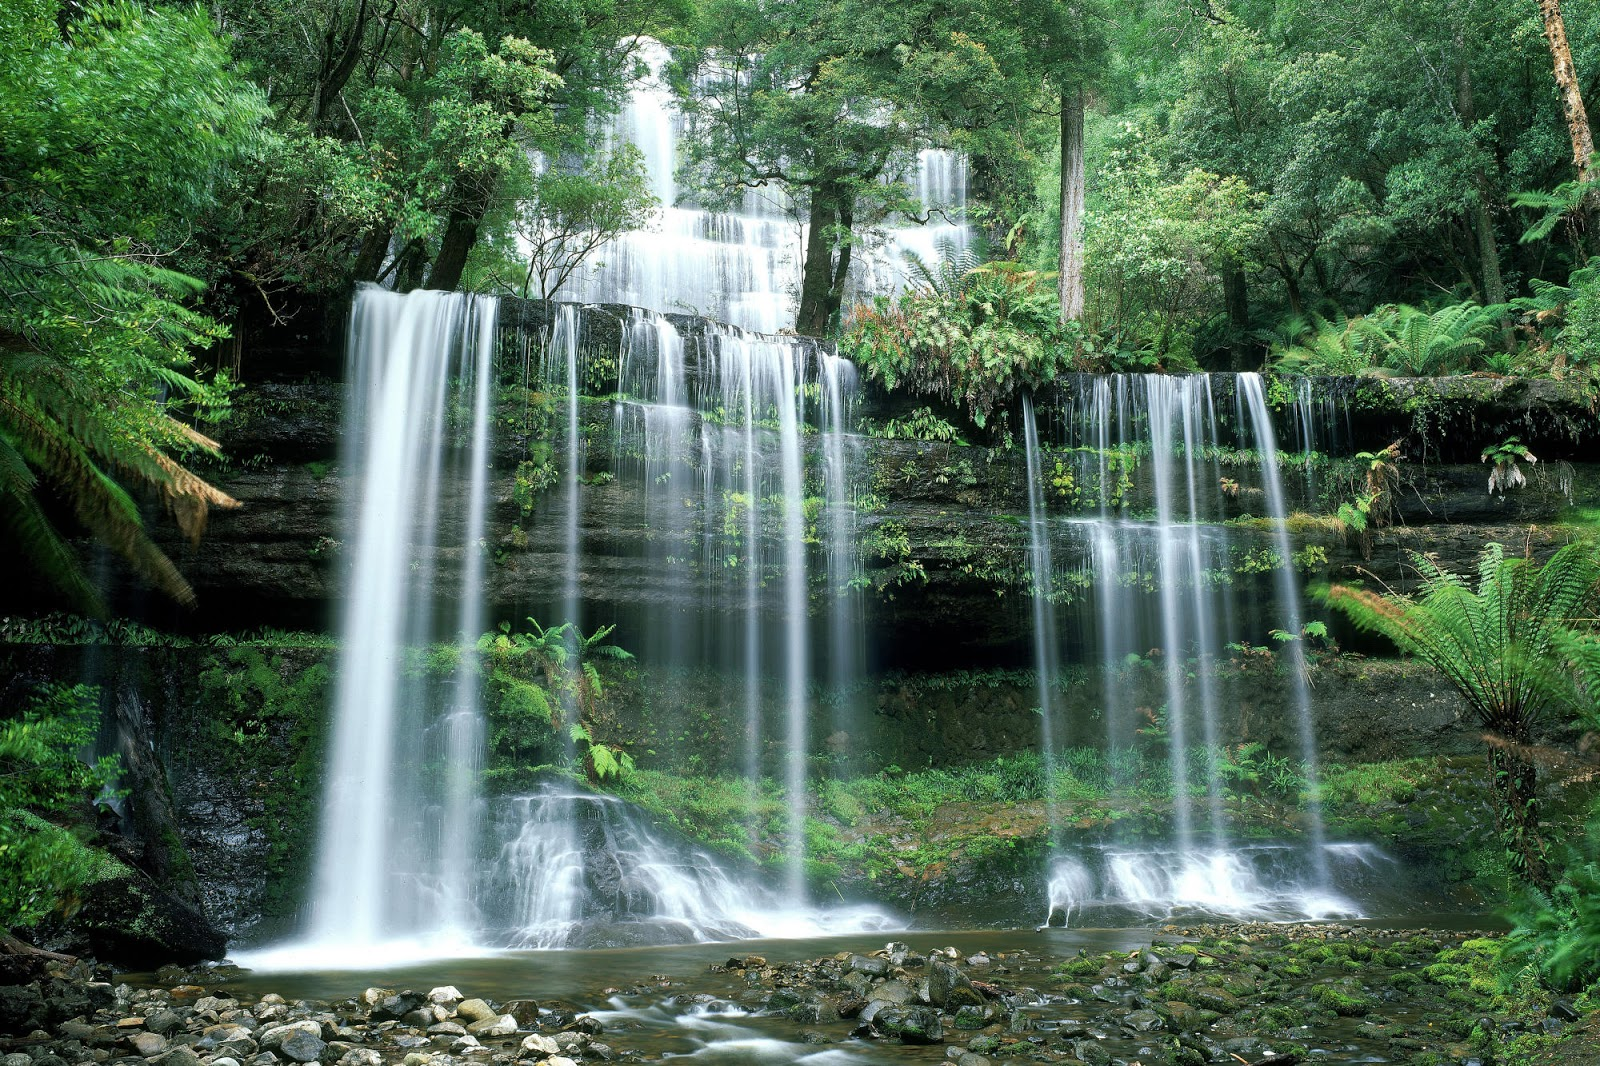 Free Wallpaper Download: Waterfalls Wallpaper And Desktop